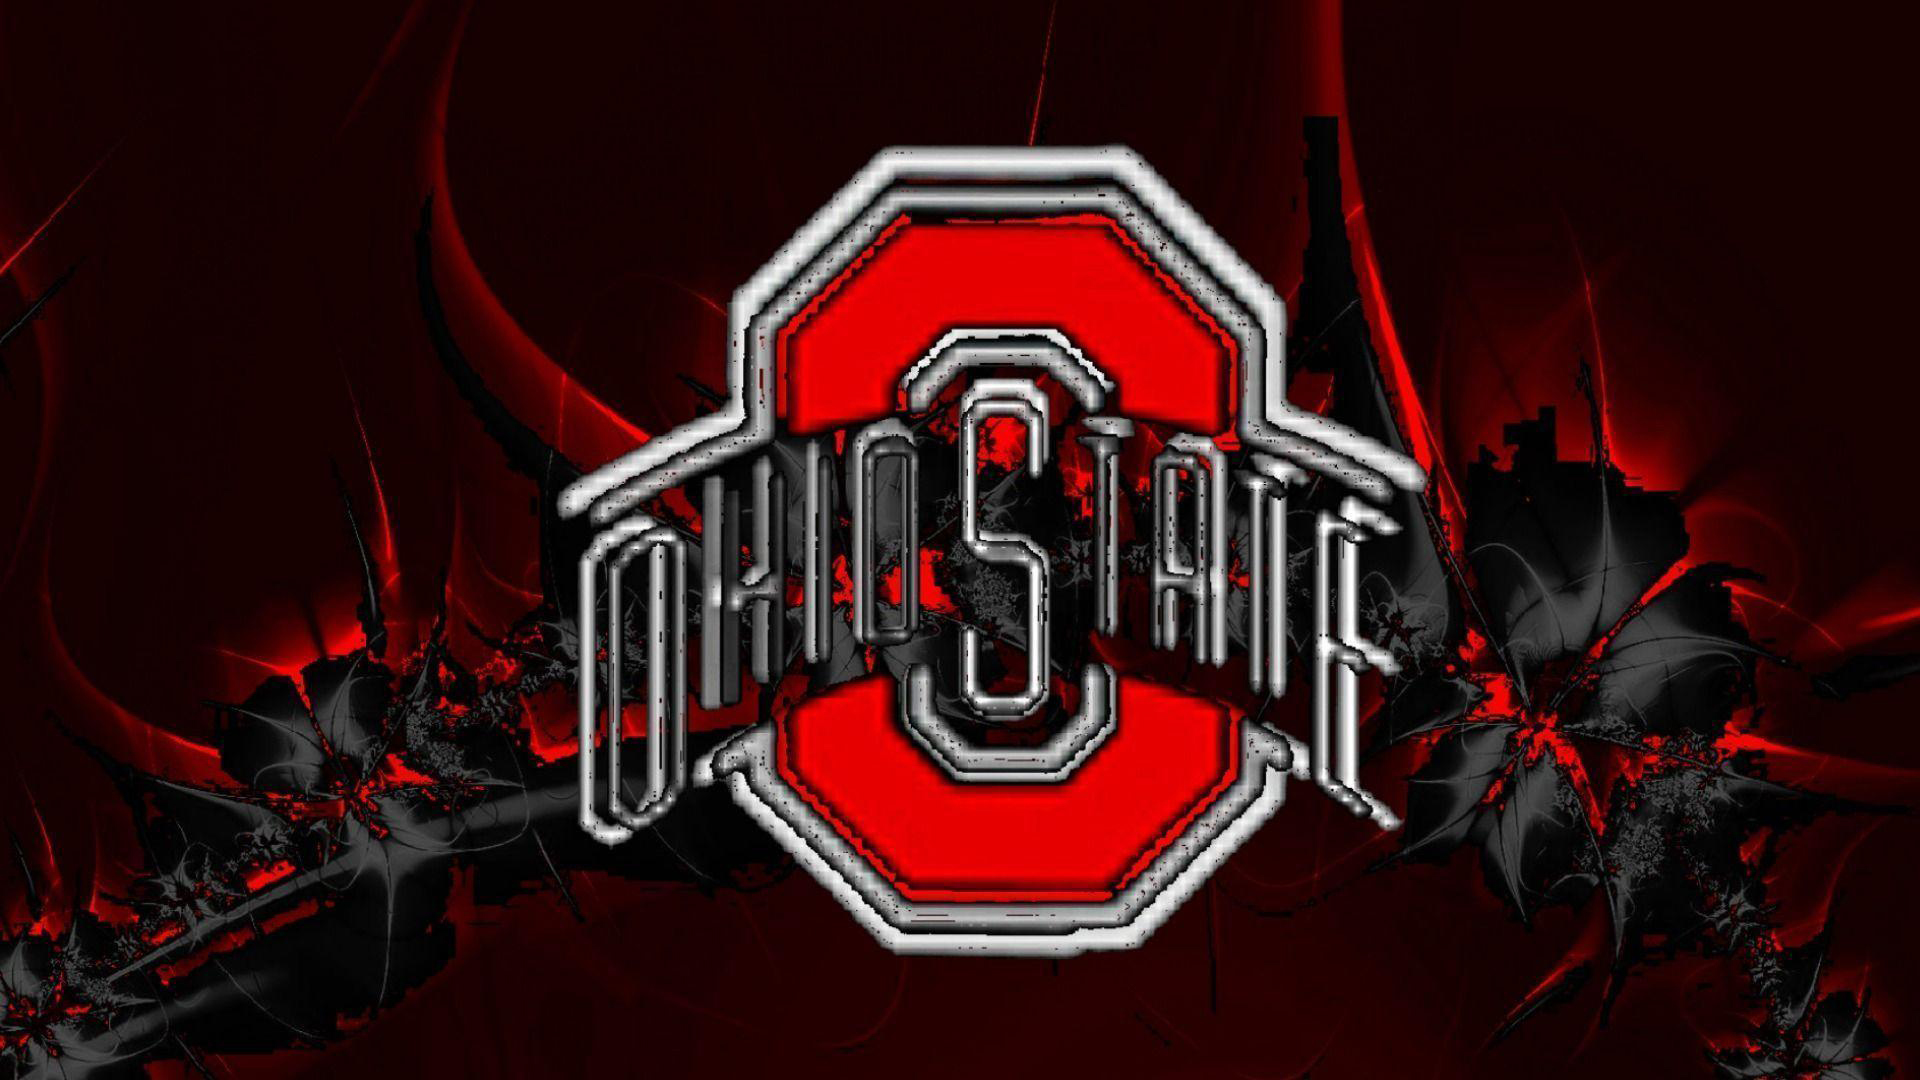 Download Ahs Ohio State Word In Red Background Hd Ohio State